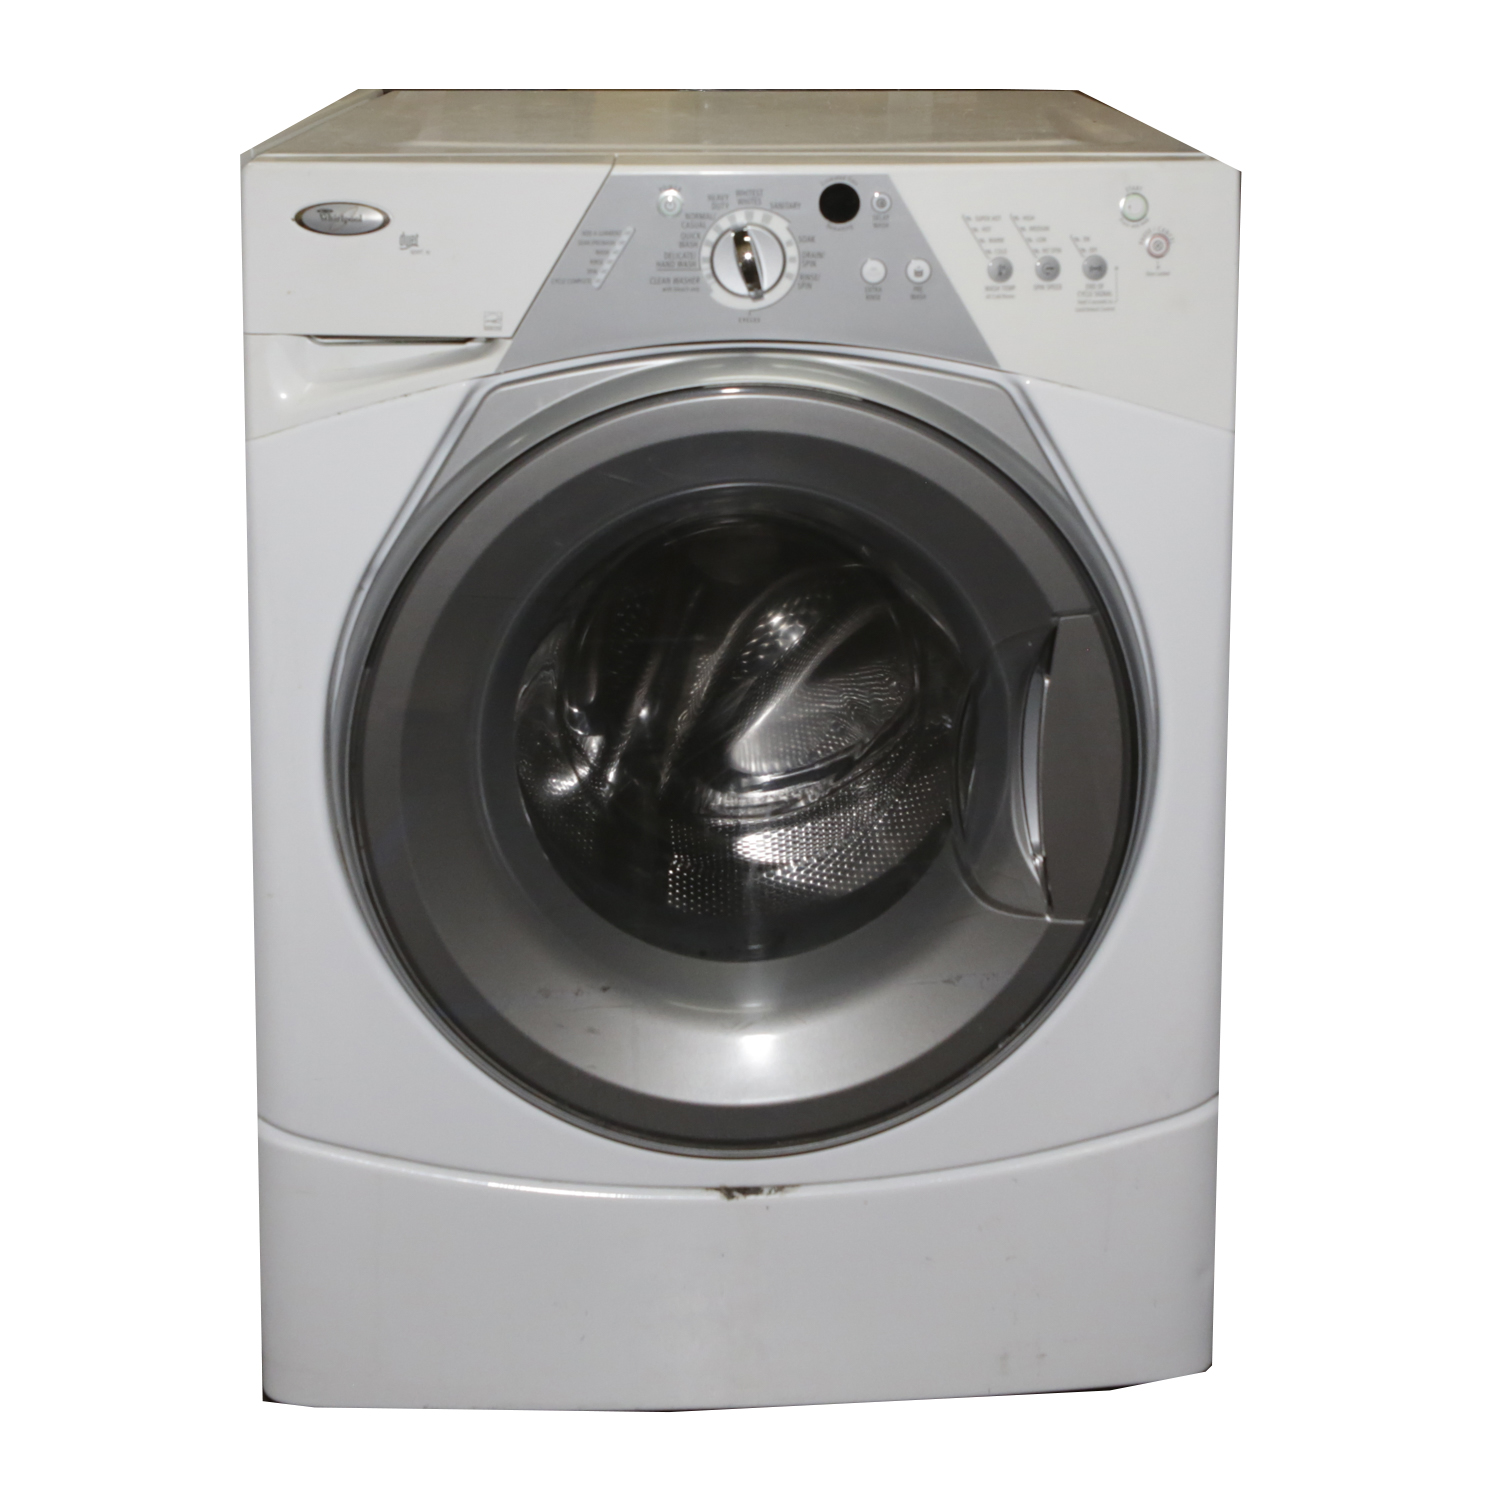 kenmore he2 dryer. whirlpool duet sport washer kenmore he2 dryer